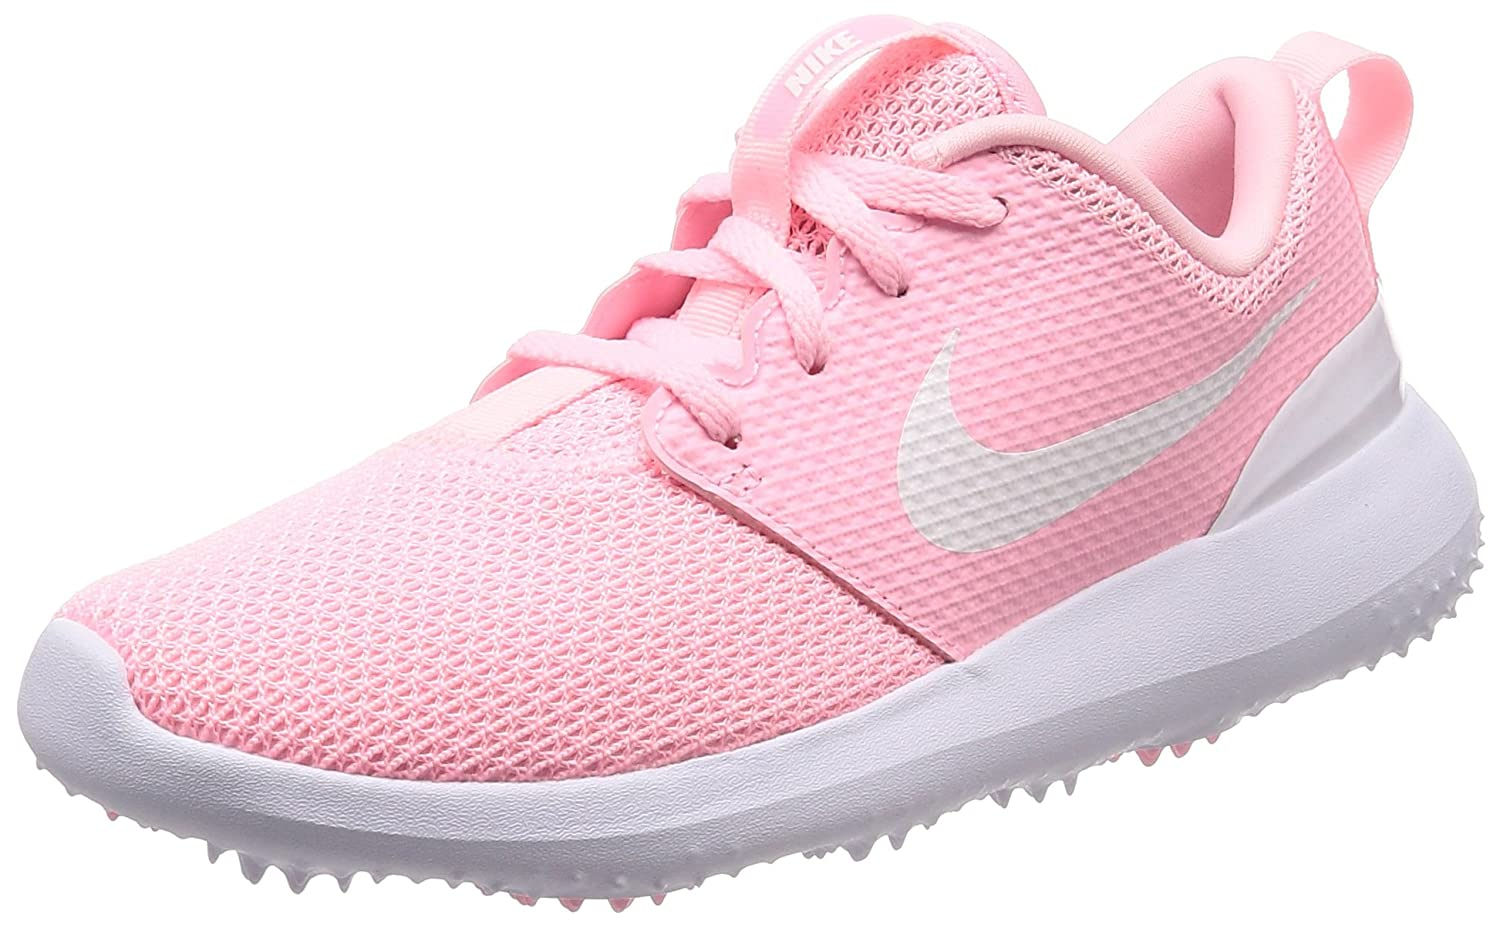 NIKE Women's Roshe G Golf Shoes AA1851-400 B072FV4Q7F 7 B(M) US|Arctic Punch/White